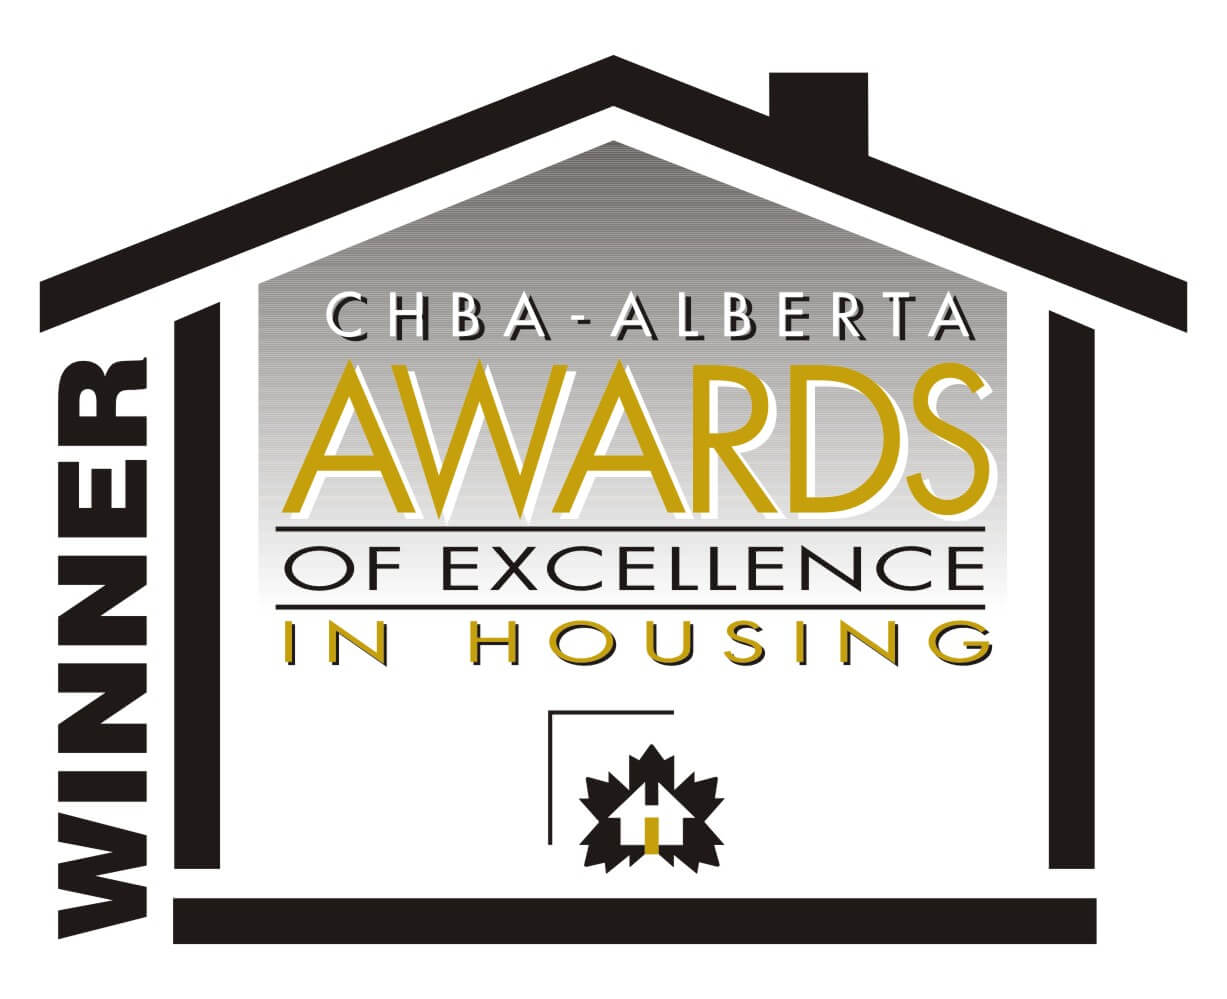 chba - alberta awards of excellence in housing